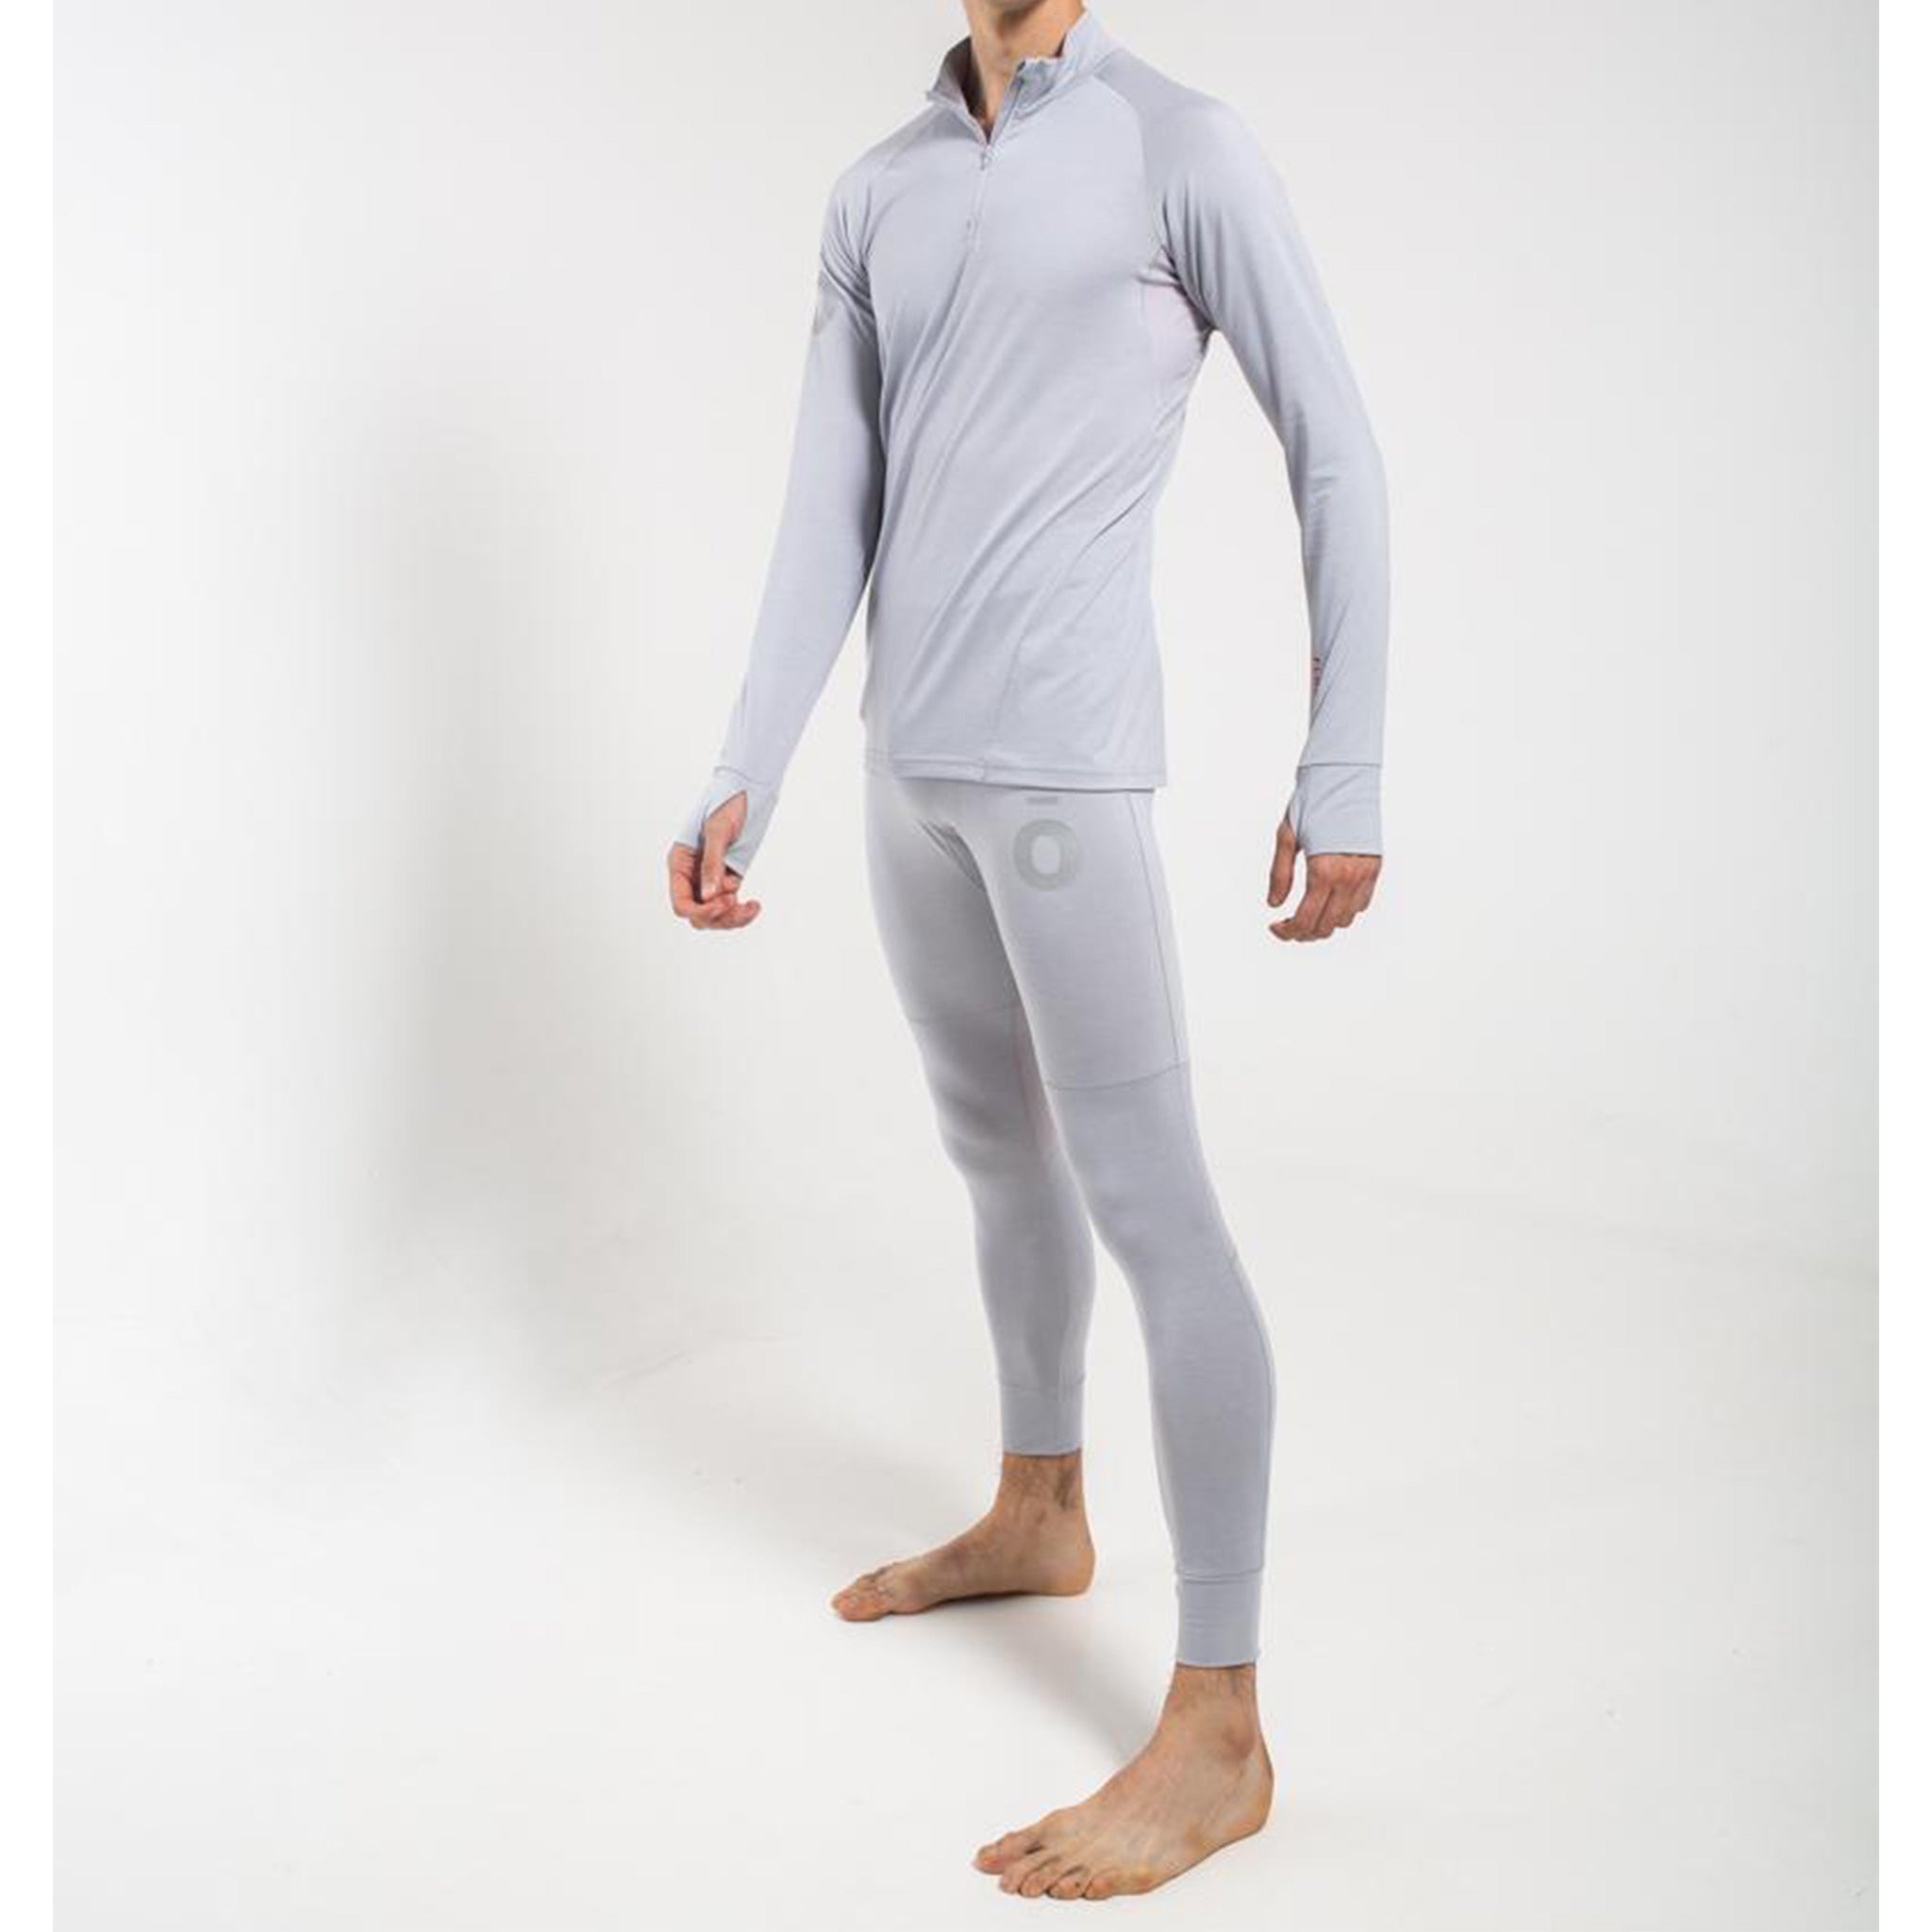 All Action Half Zip Base Layer Shirt